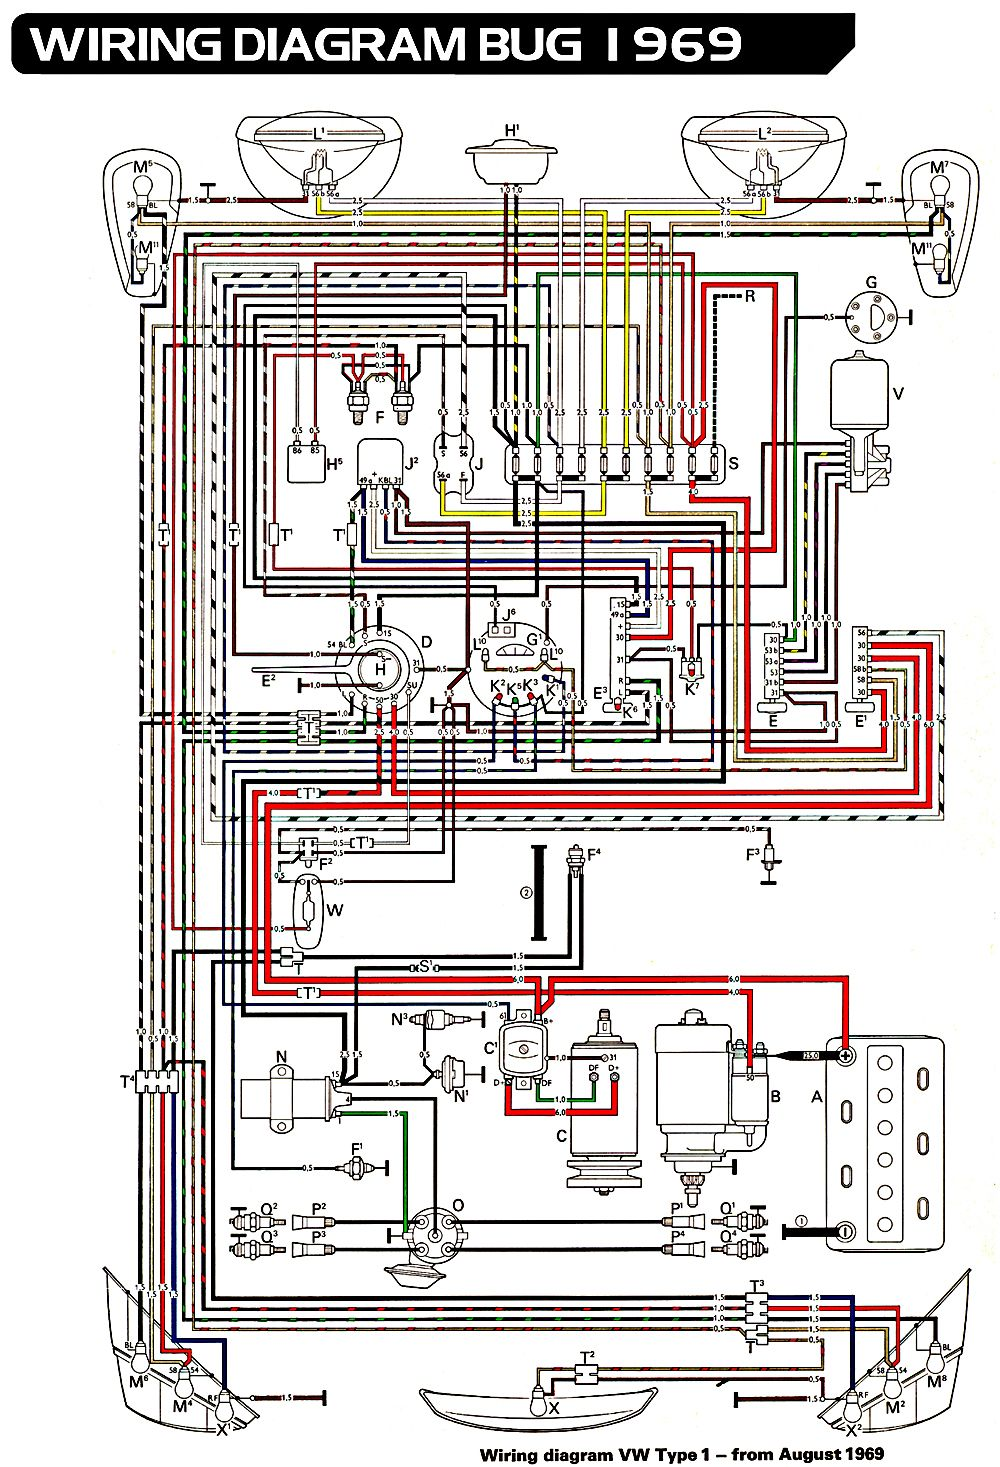 6d75c15875479254f26a32a8499d9044 volkswagen beetle wiring diagram 1966 vw beetle wiring 1969 vw beetle wiring diagram at bayanpartner.co